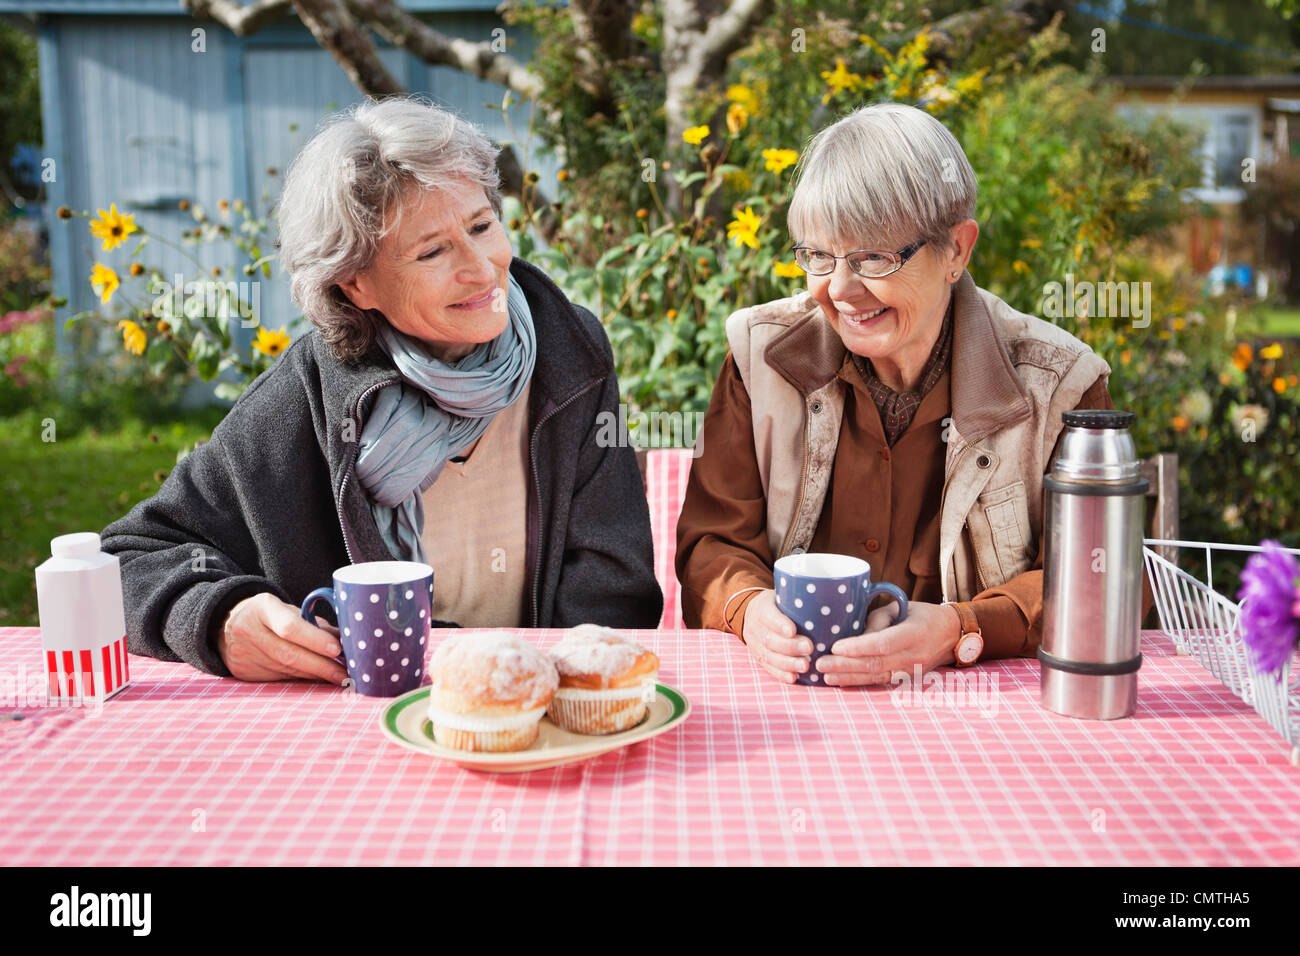 Two senior women drinks coffee at checkered table - Stock Image